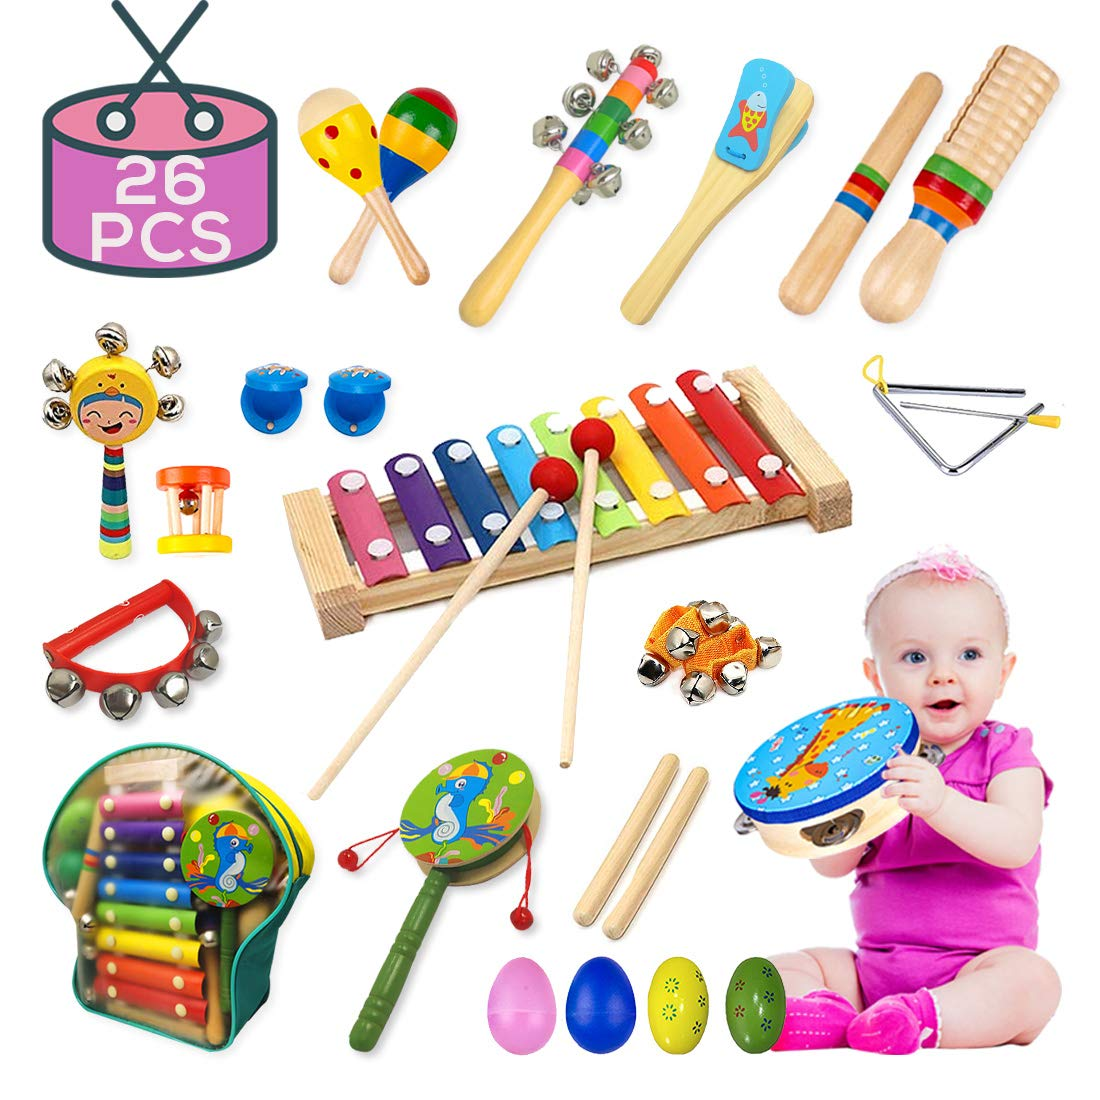 Buself Musical Instruments Toys for Toddlers-15 Types Wooden Percussion Instruments for Kids with Adorable Backpack Storage Bag (26 PCS) by Buself